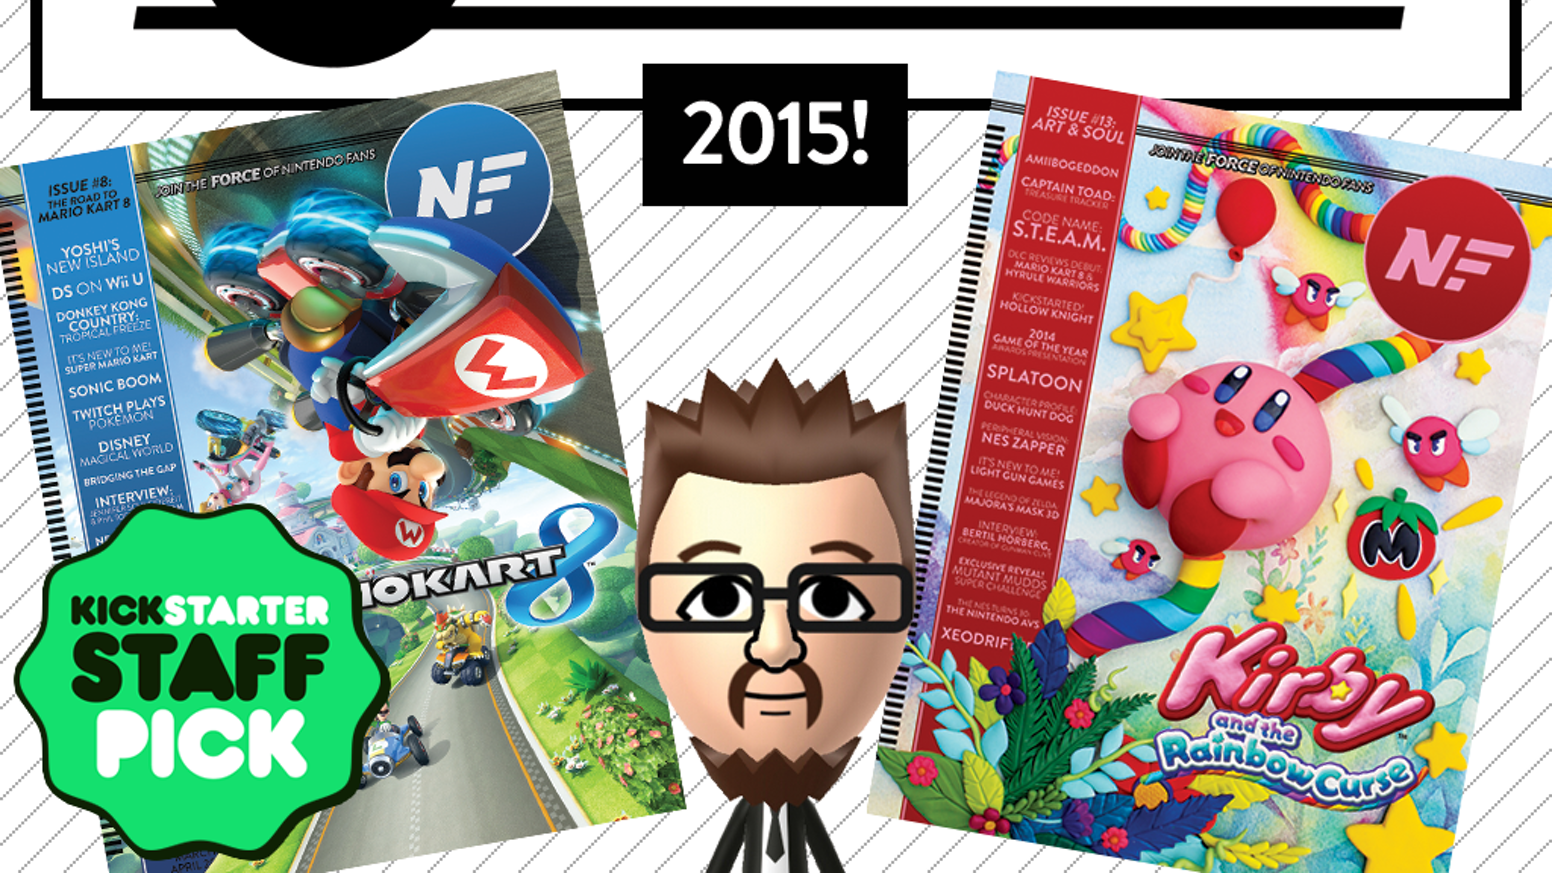 NF Magazine: 2015 Renewals & New Subscriptions by NF Publishing, LLC